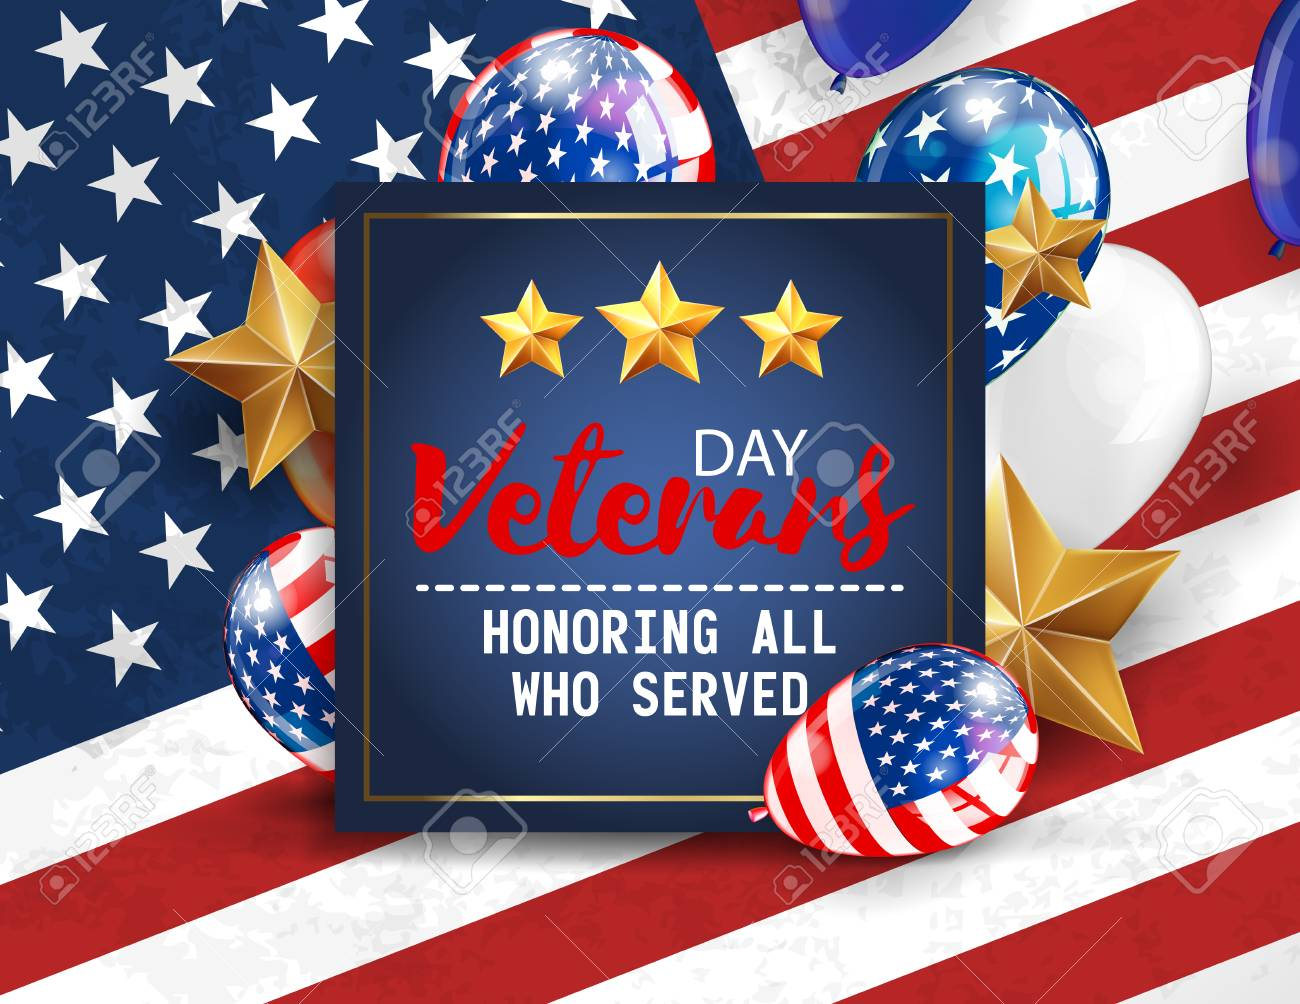 Veterans Day Greeting Illustration Navy Blue Plate With Lettering